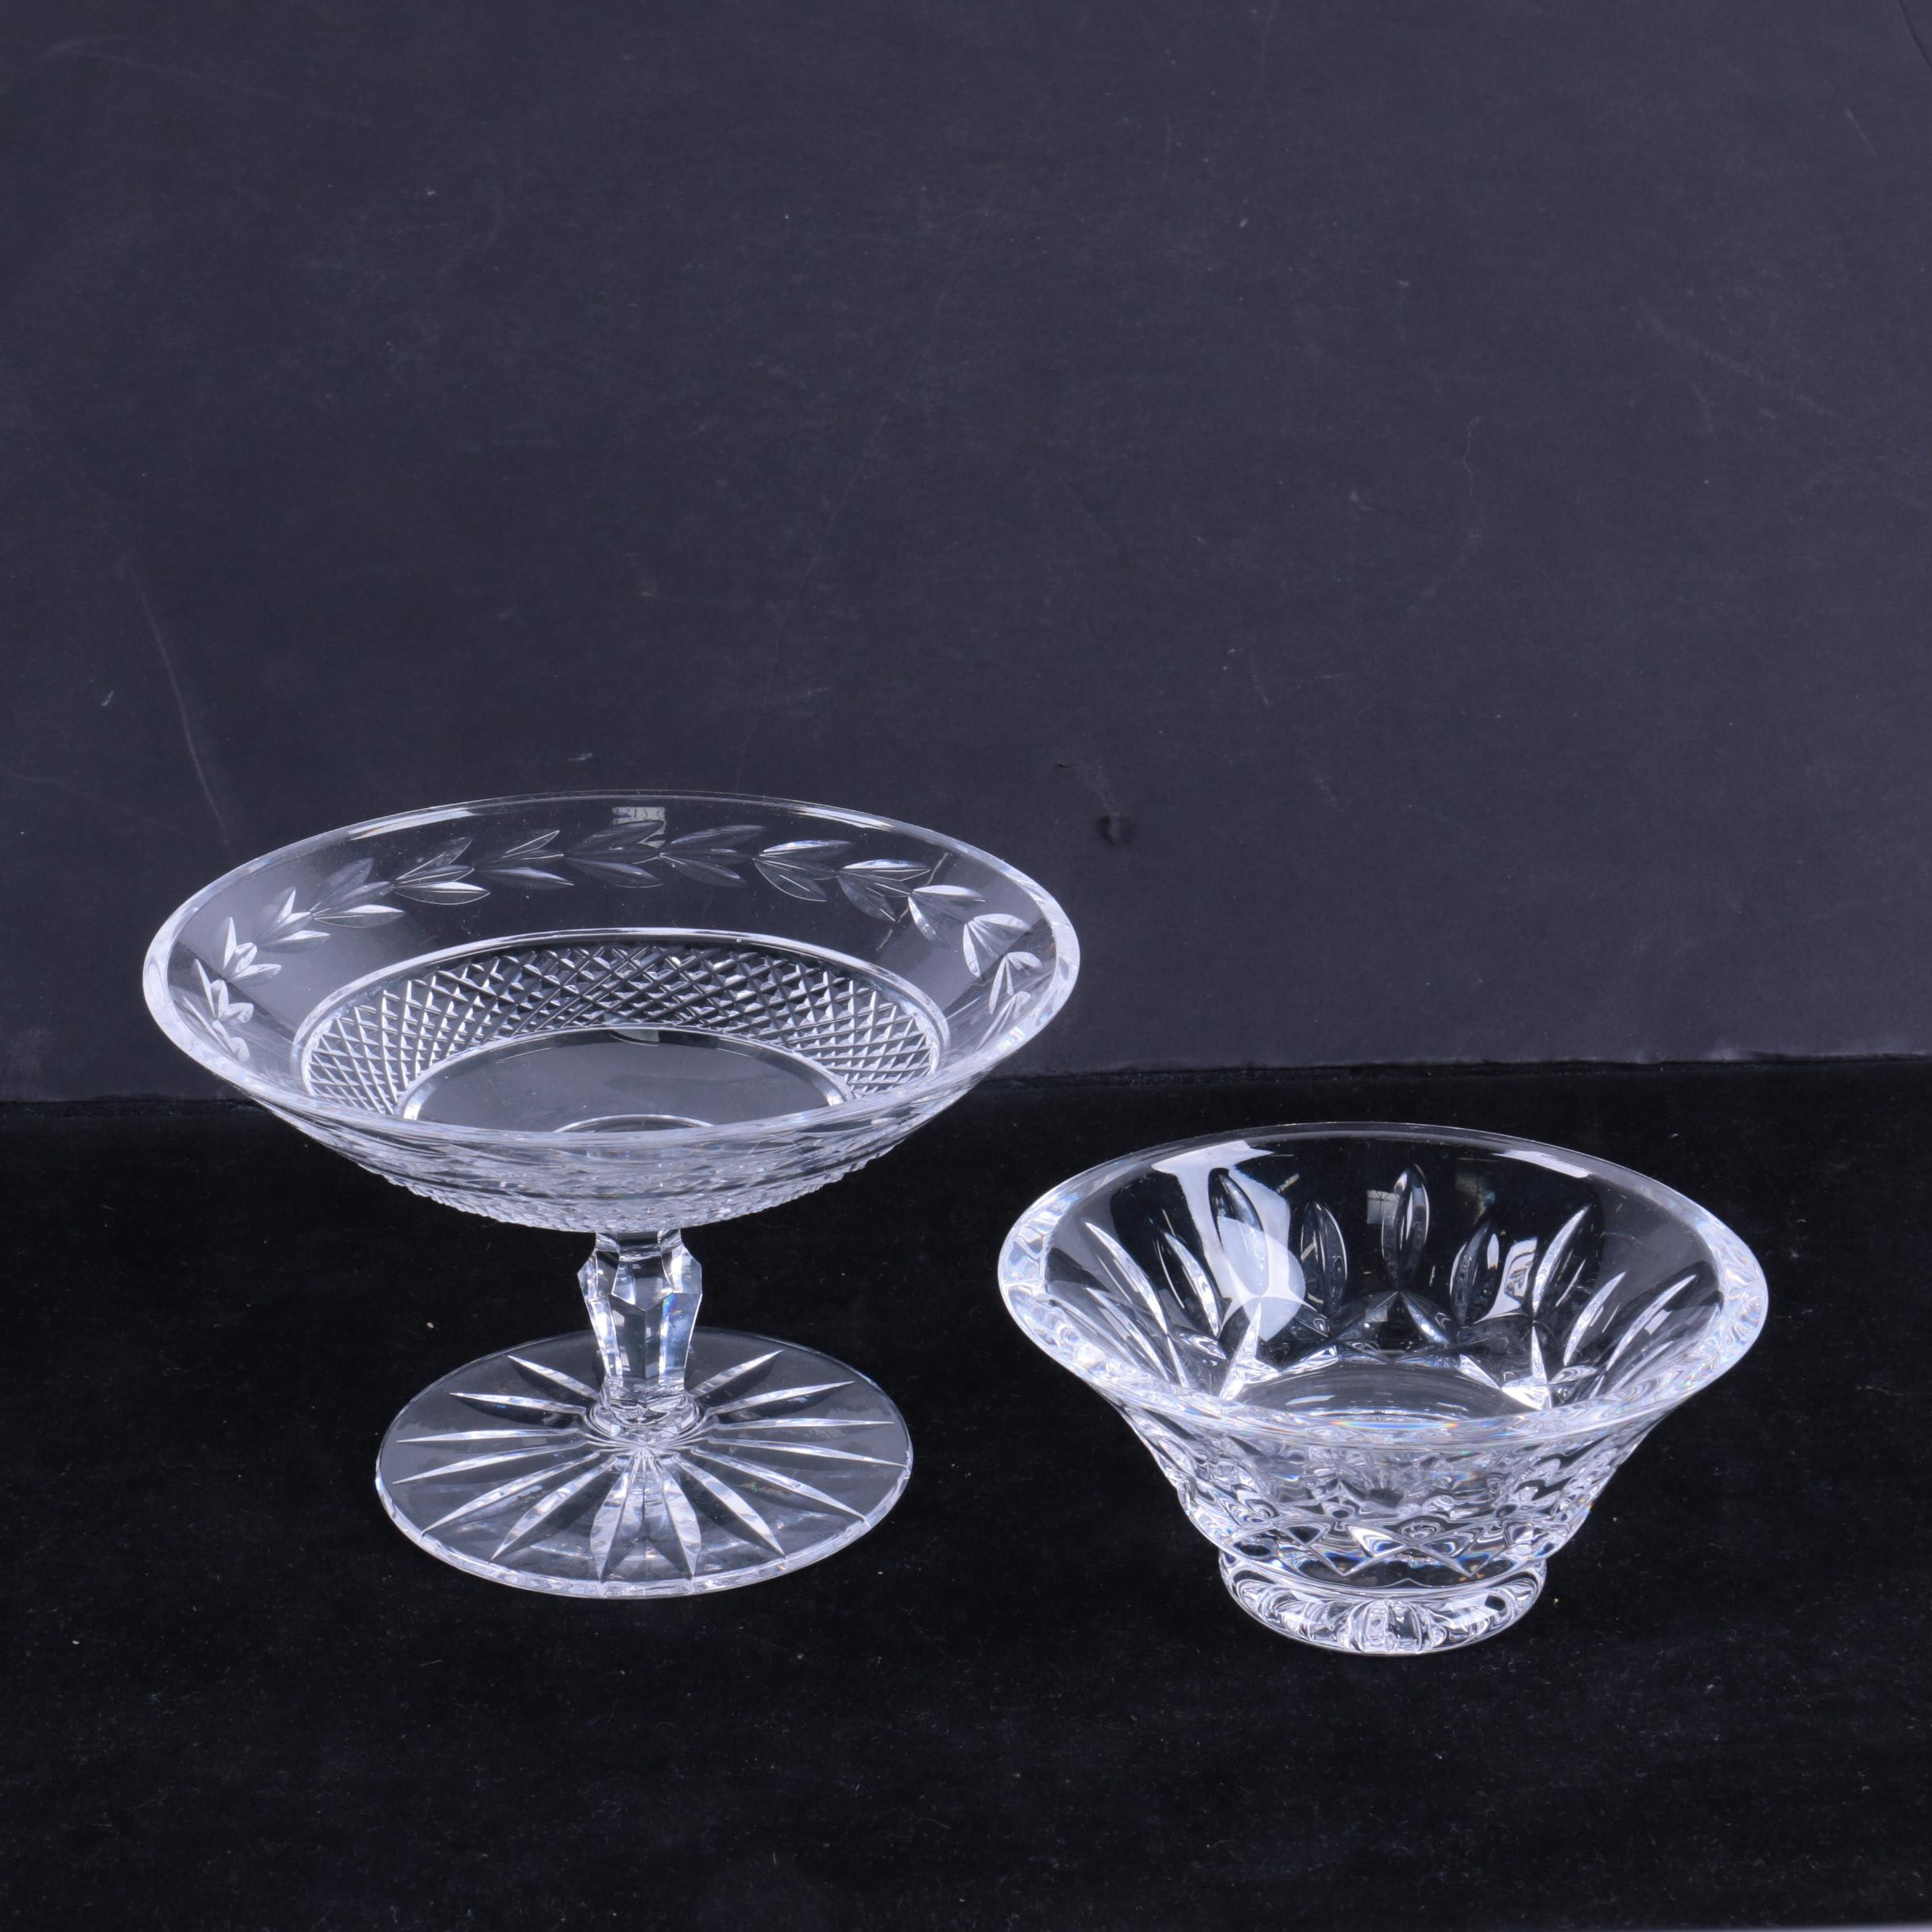 Waterford Crystal Bowls